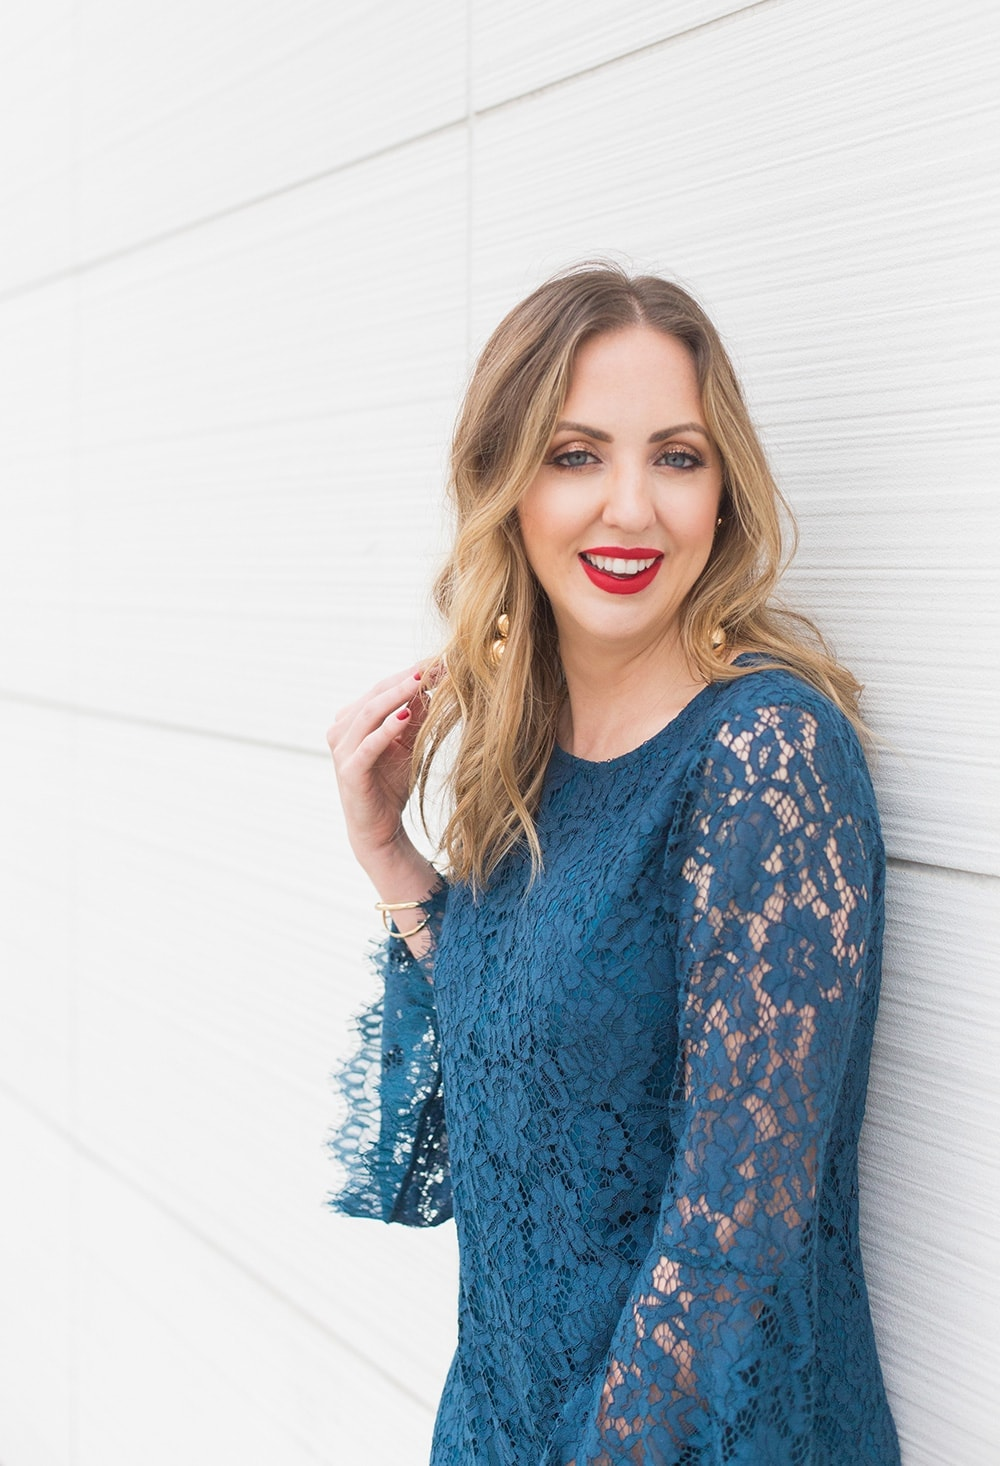 bold red lipstick with a blue lace dress